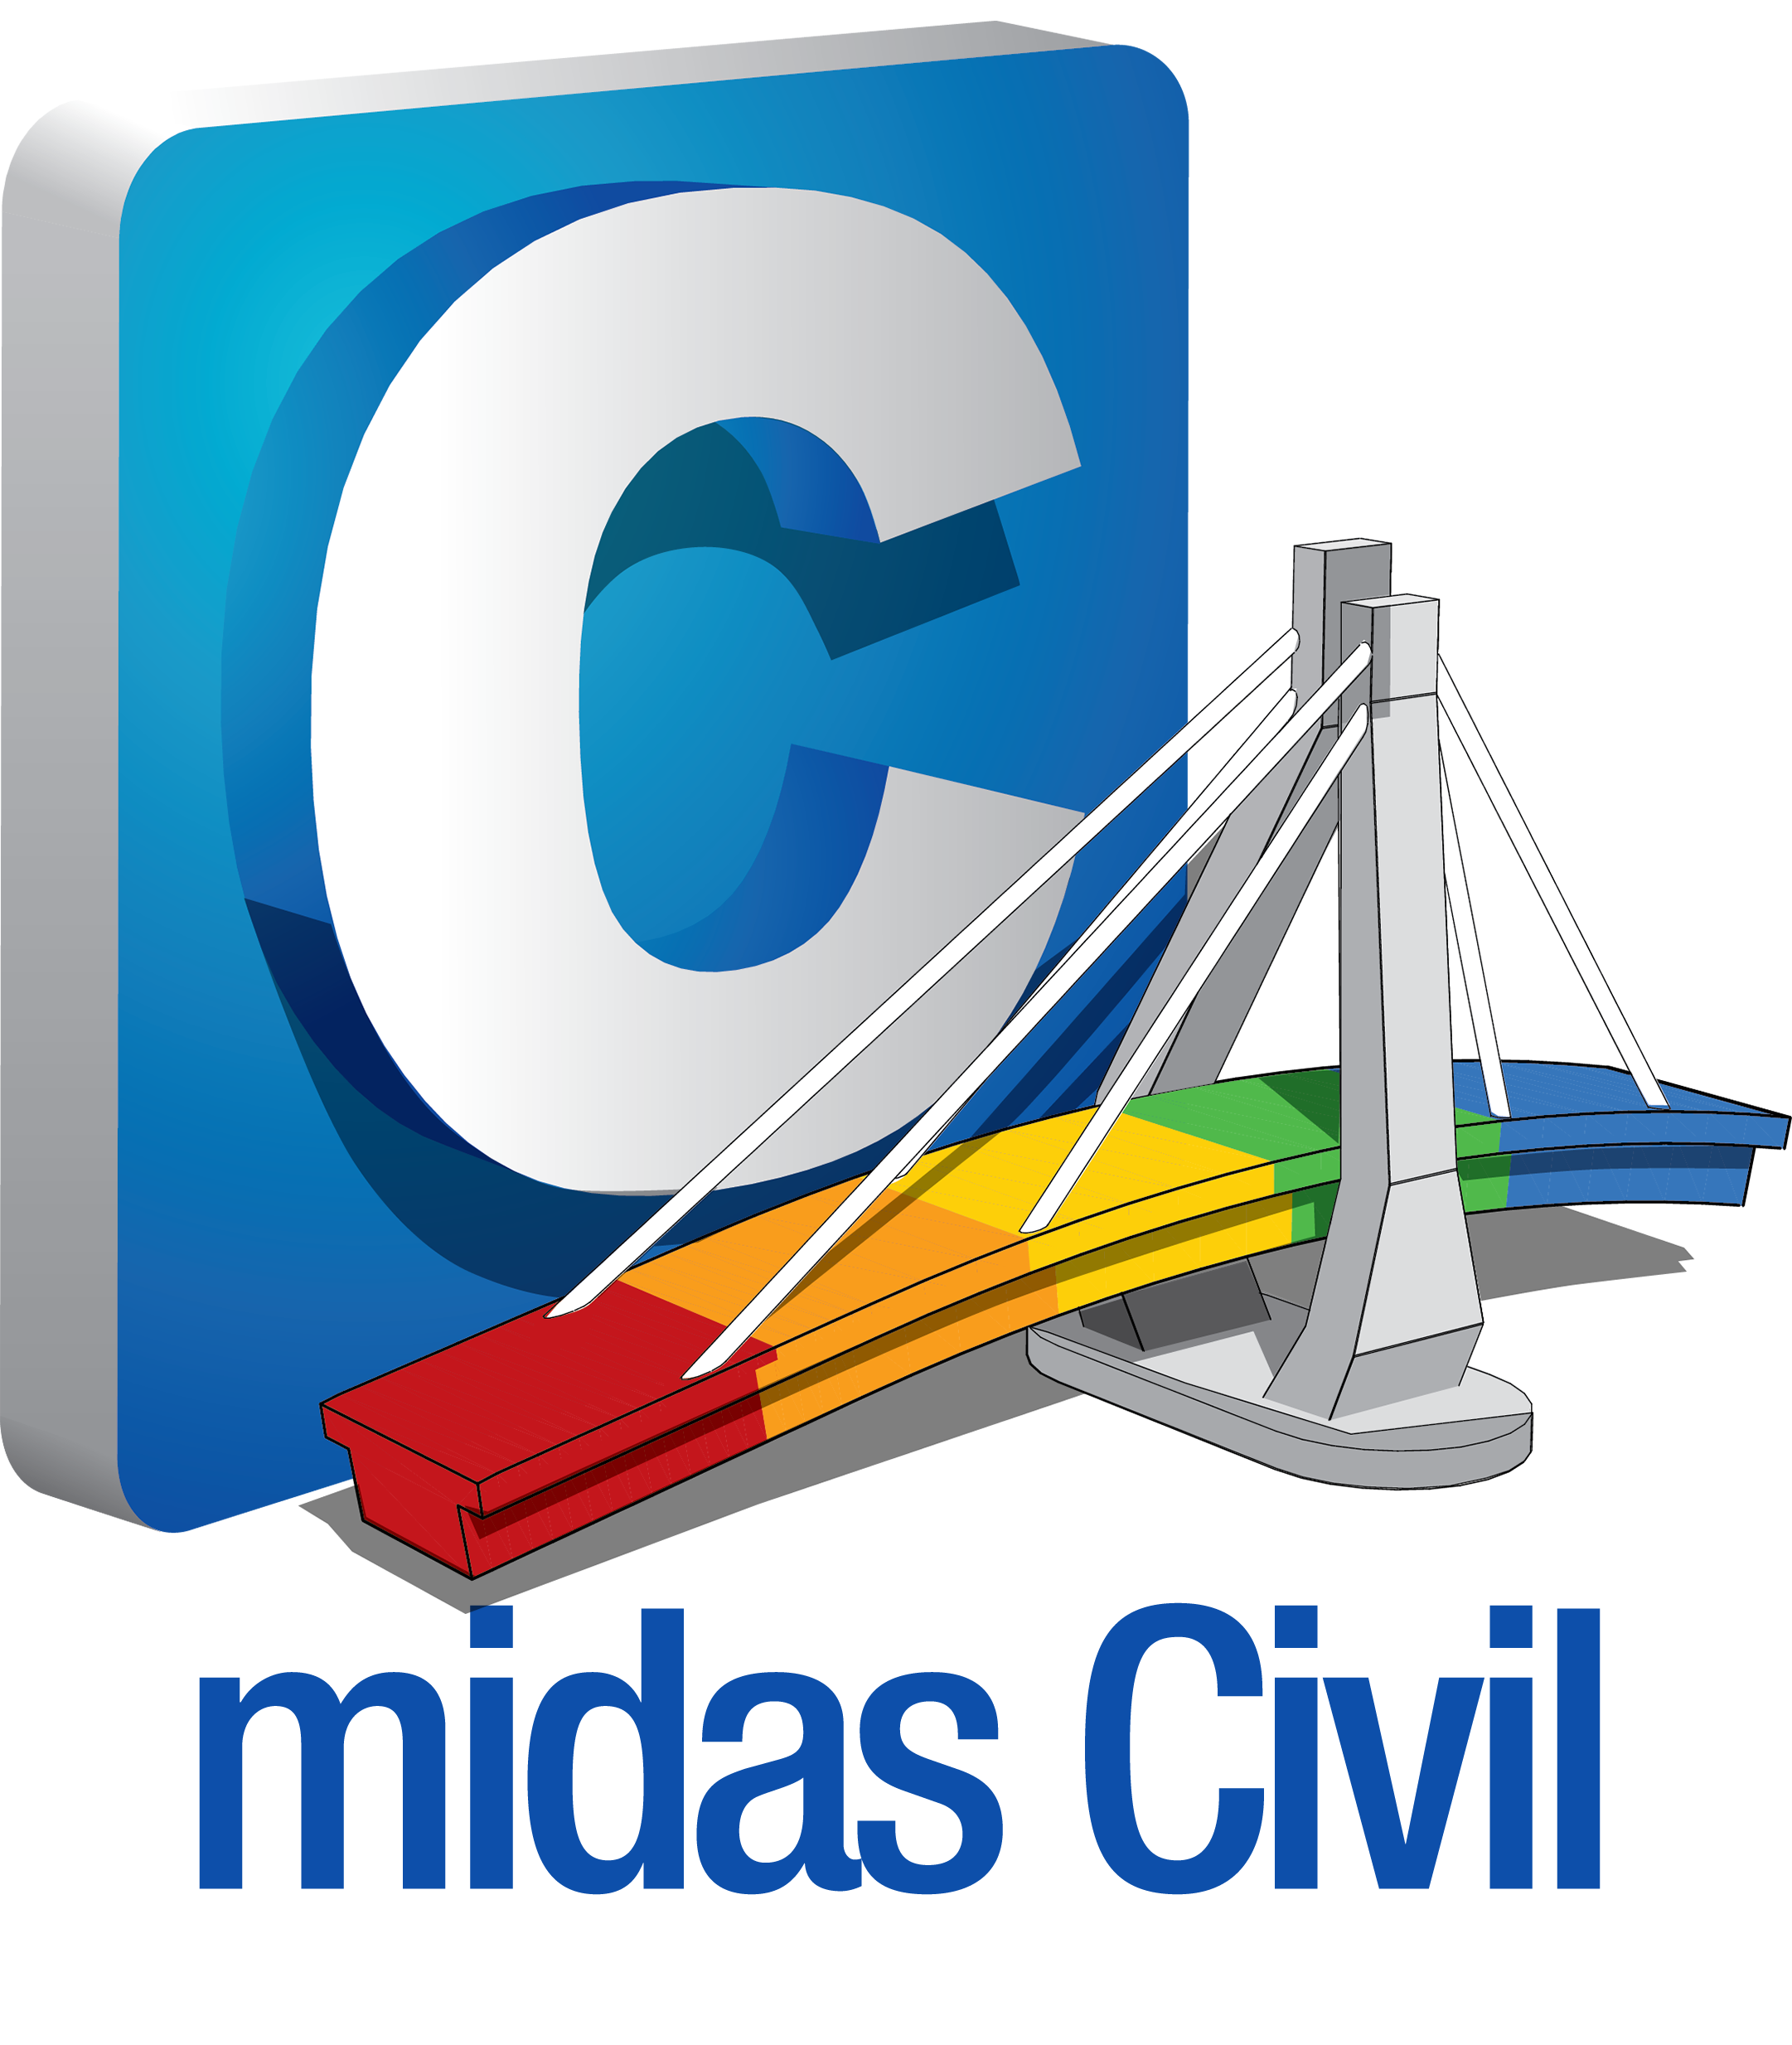 midas-civil-logo.png